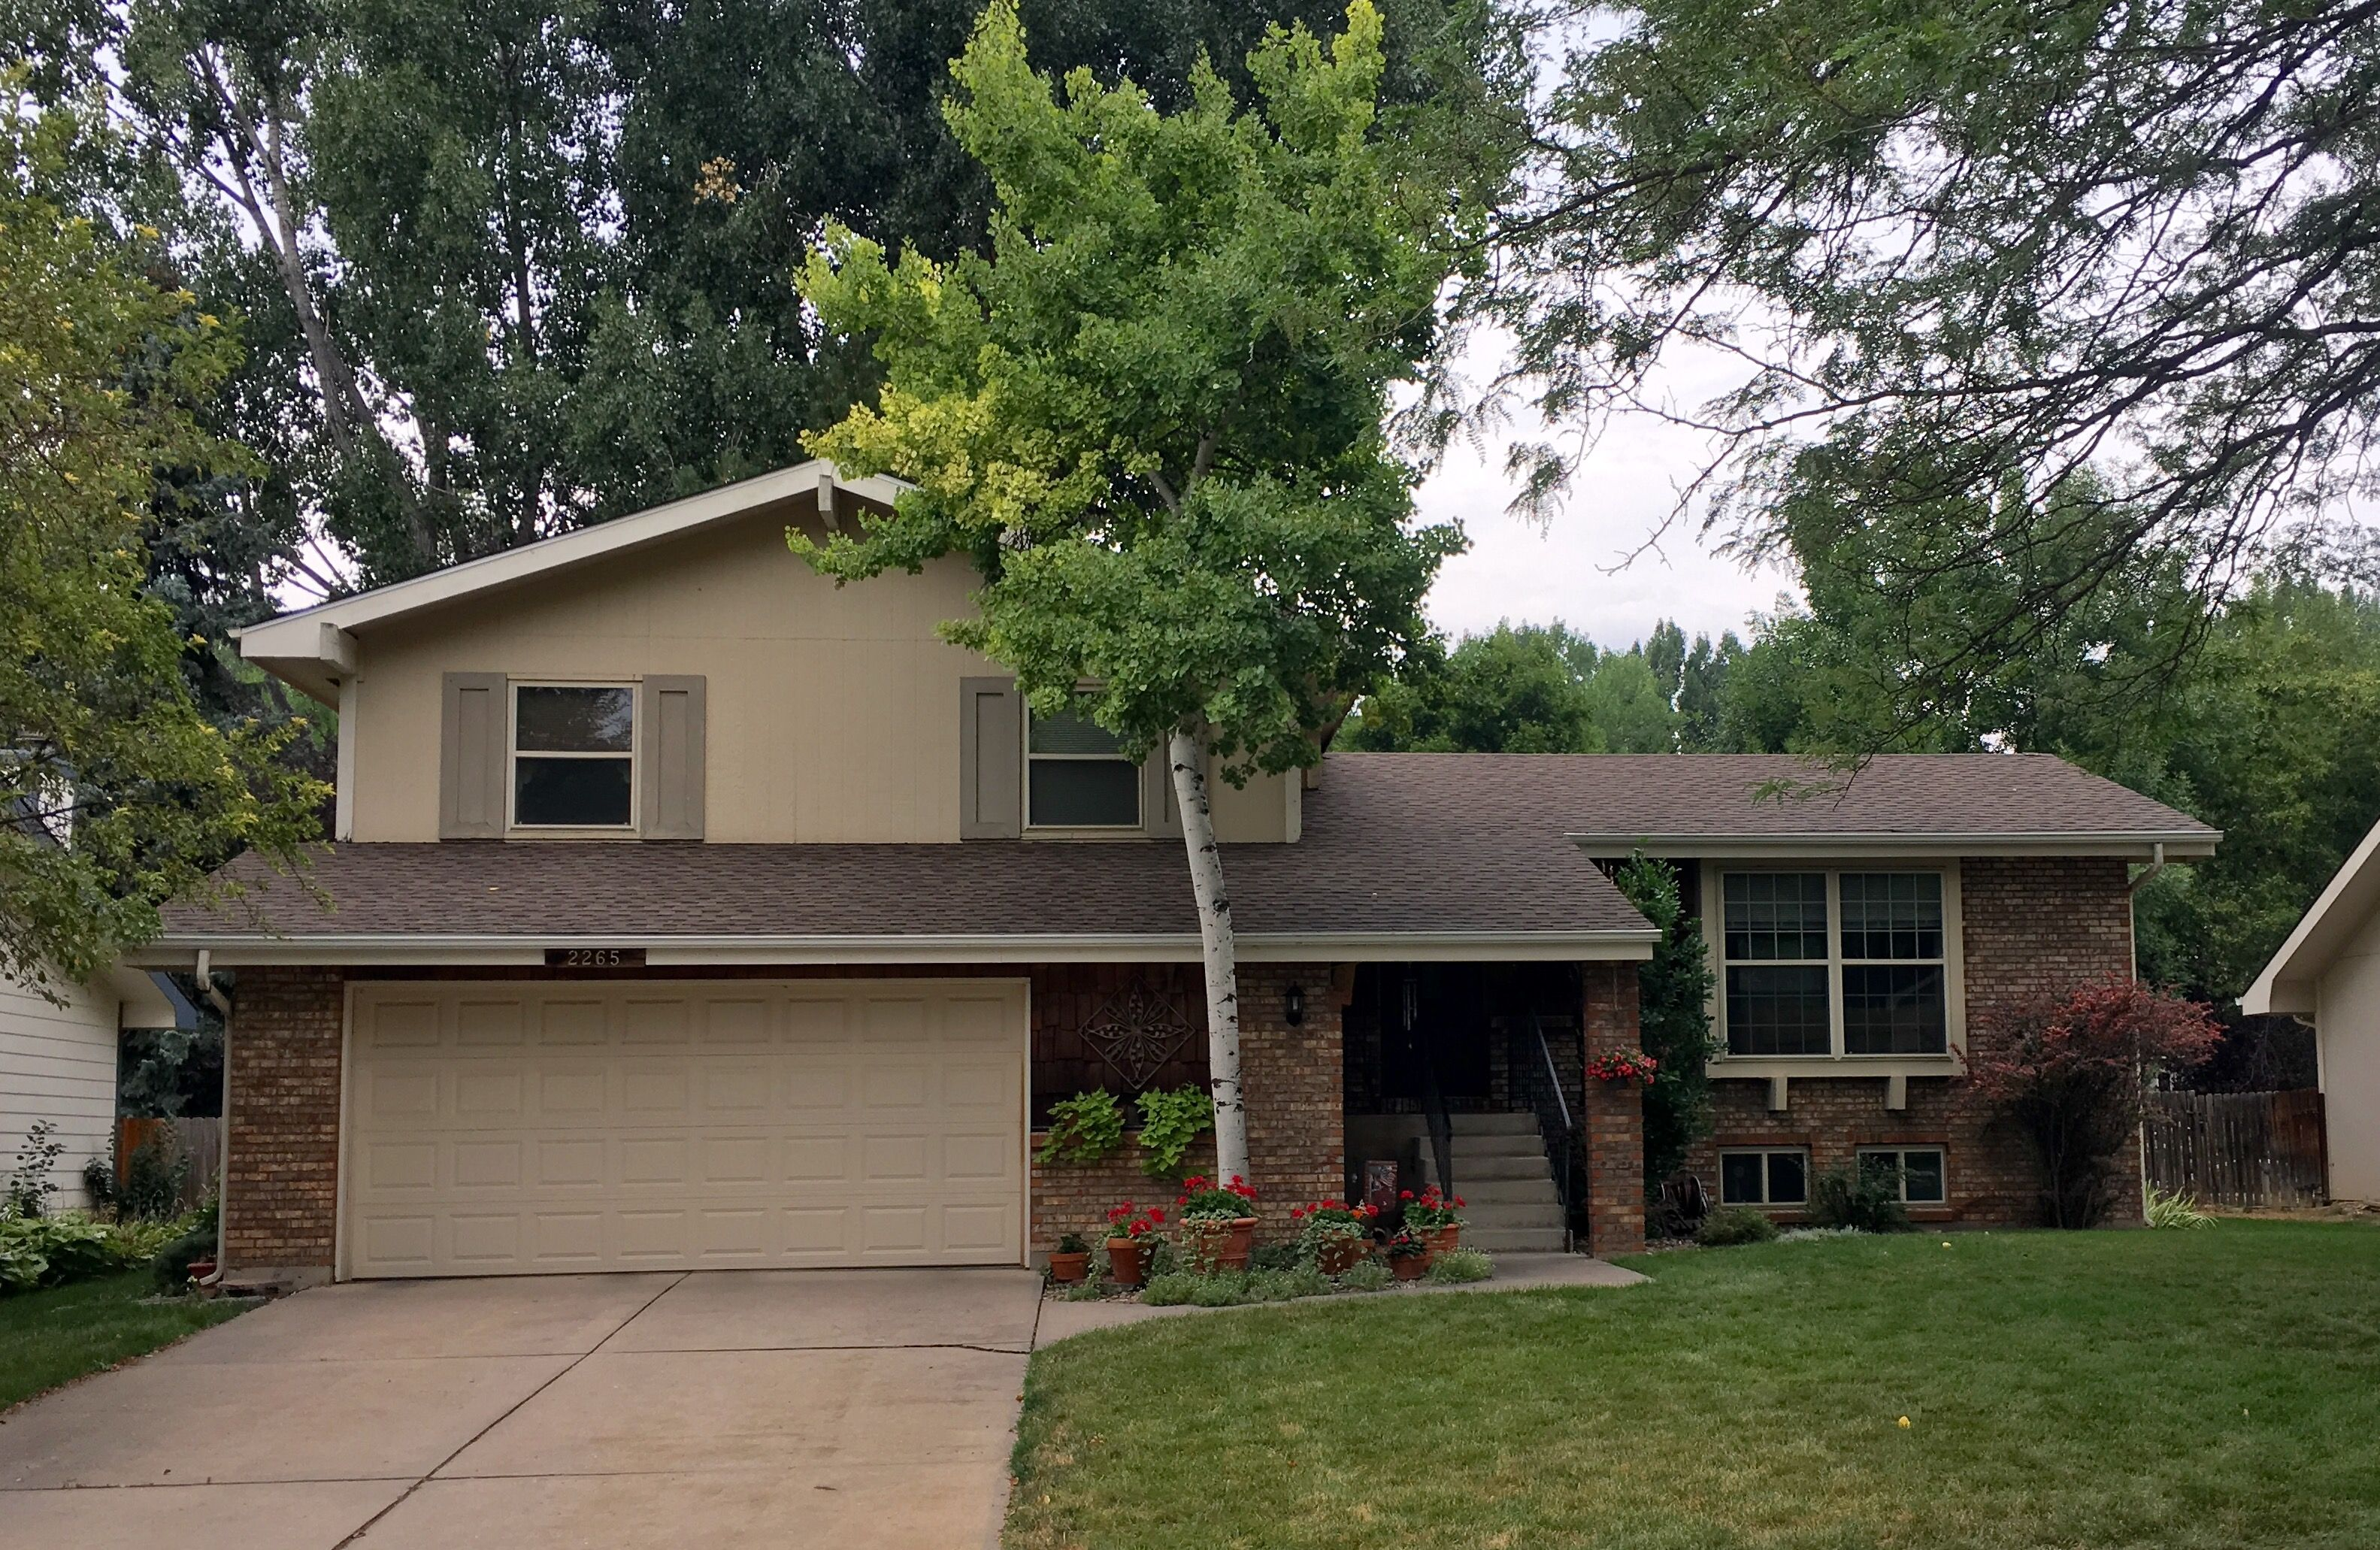 This Home In Fort Collins Has Barkwood Shingles On The Roof From The Gaf Timberline Hd Line Of Shingles Residential Roofing Brick Roof Timberline Shingles